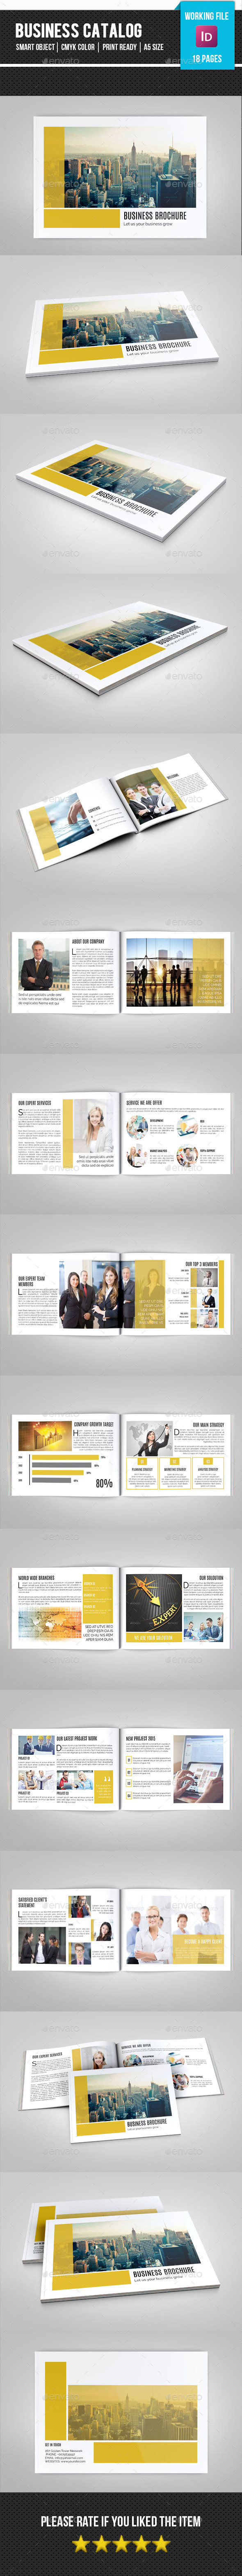 GraphicRiver Business Catalog Brochure-V166 11365801